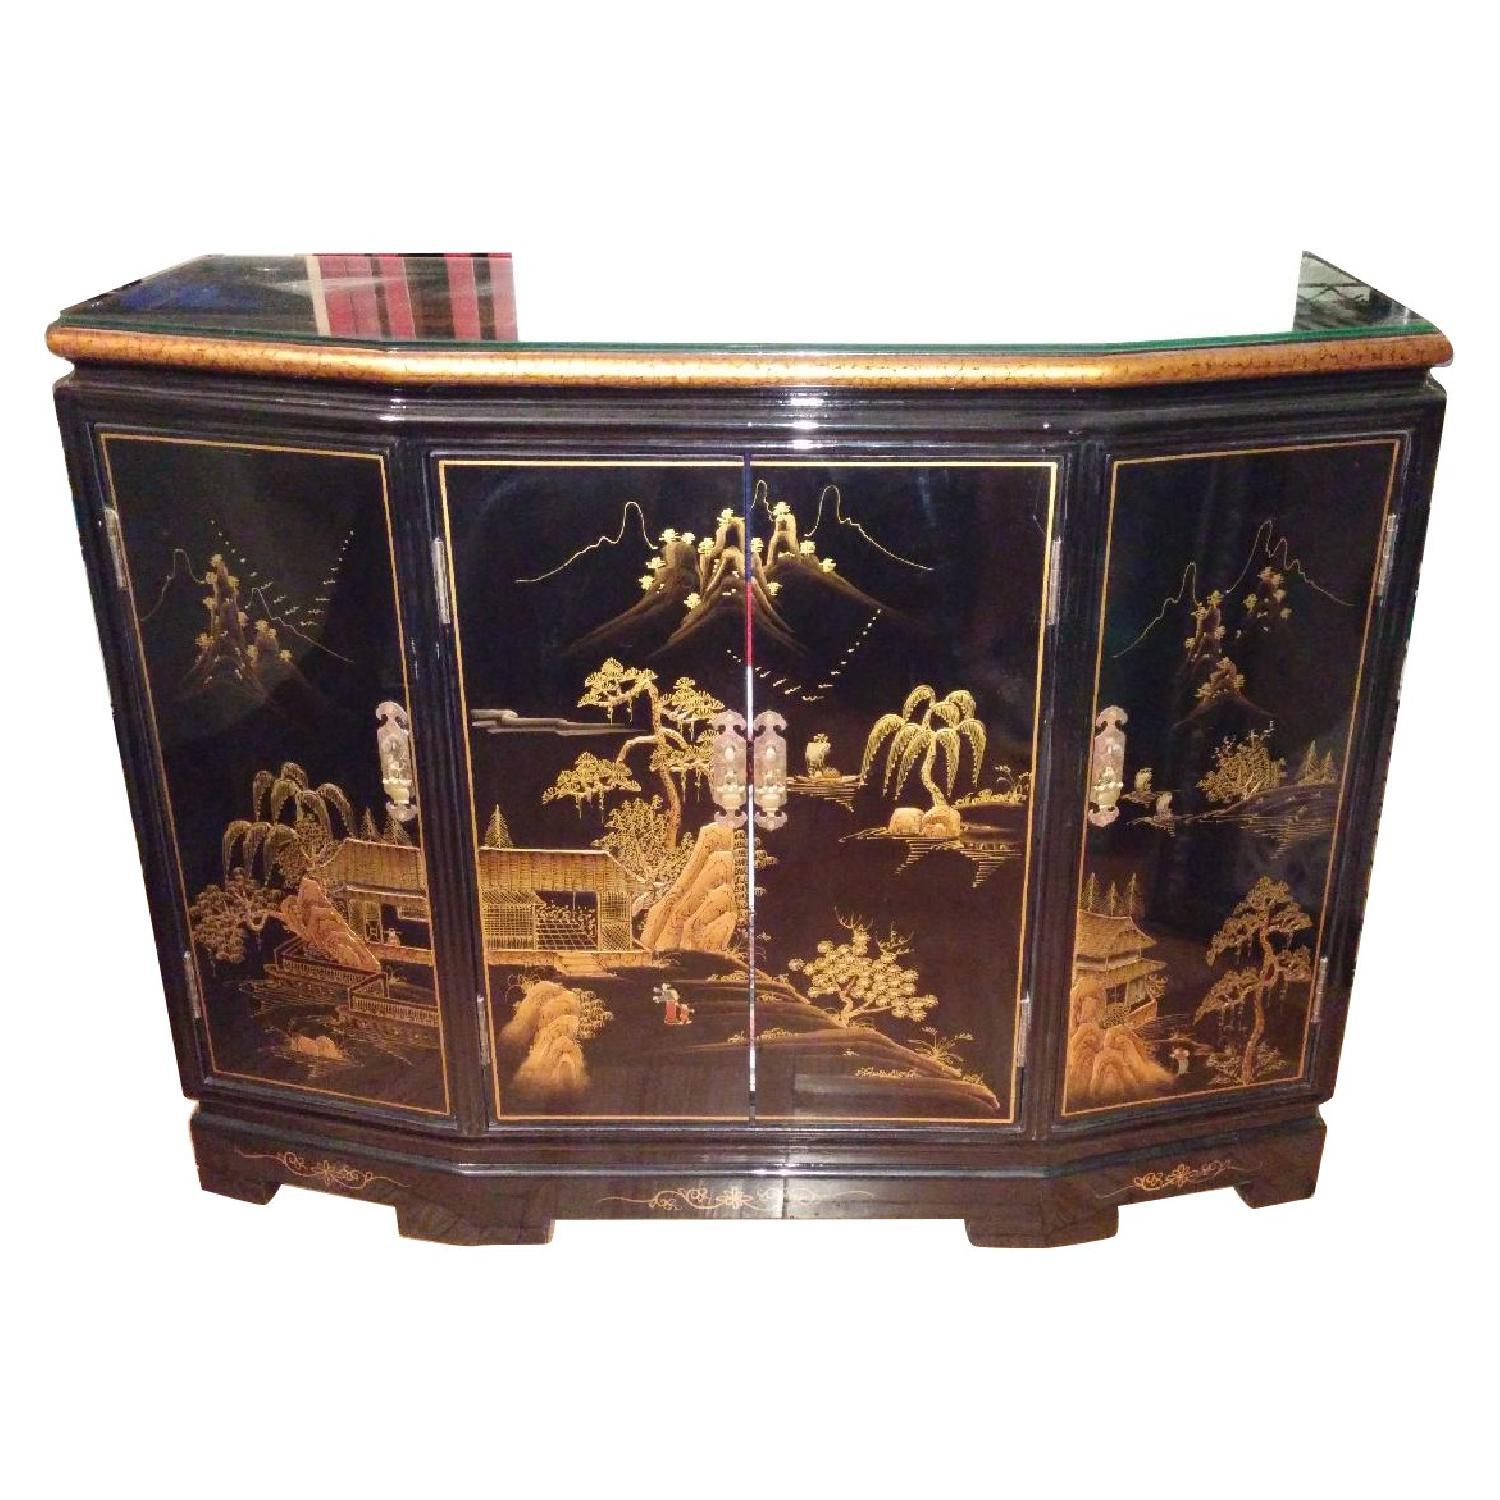 Vintage Chinese Lacquer Cabinet - image-0